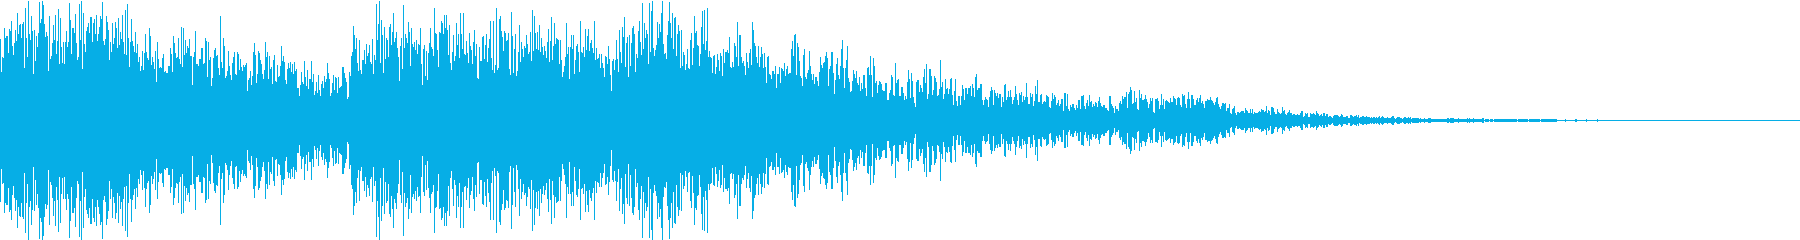 Sound logo, dynamic movie music style's reproduced waveform